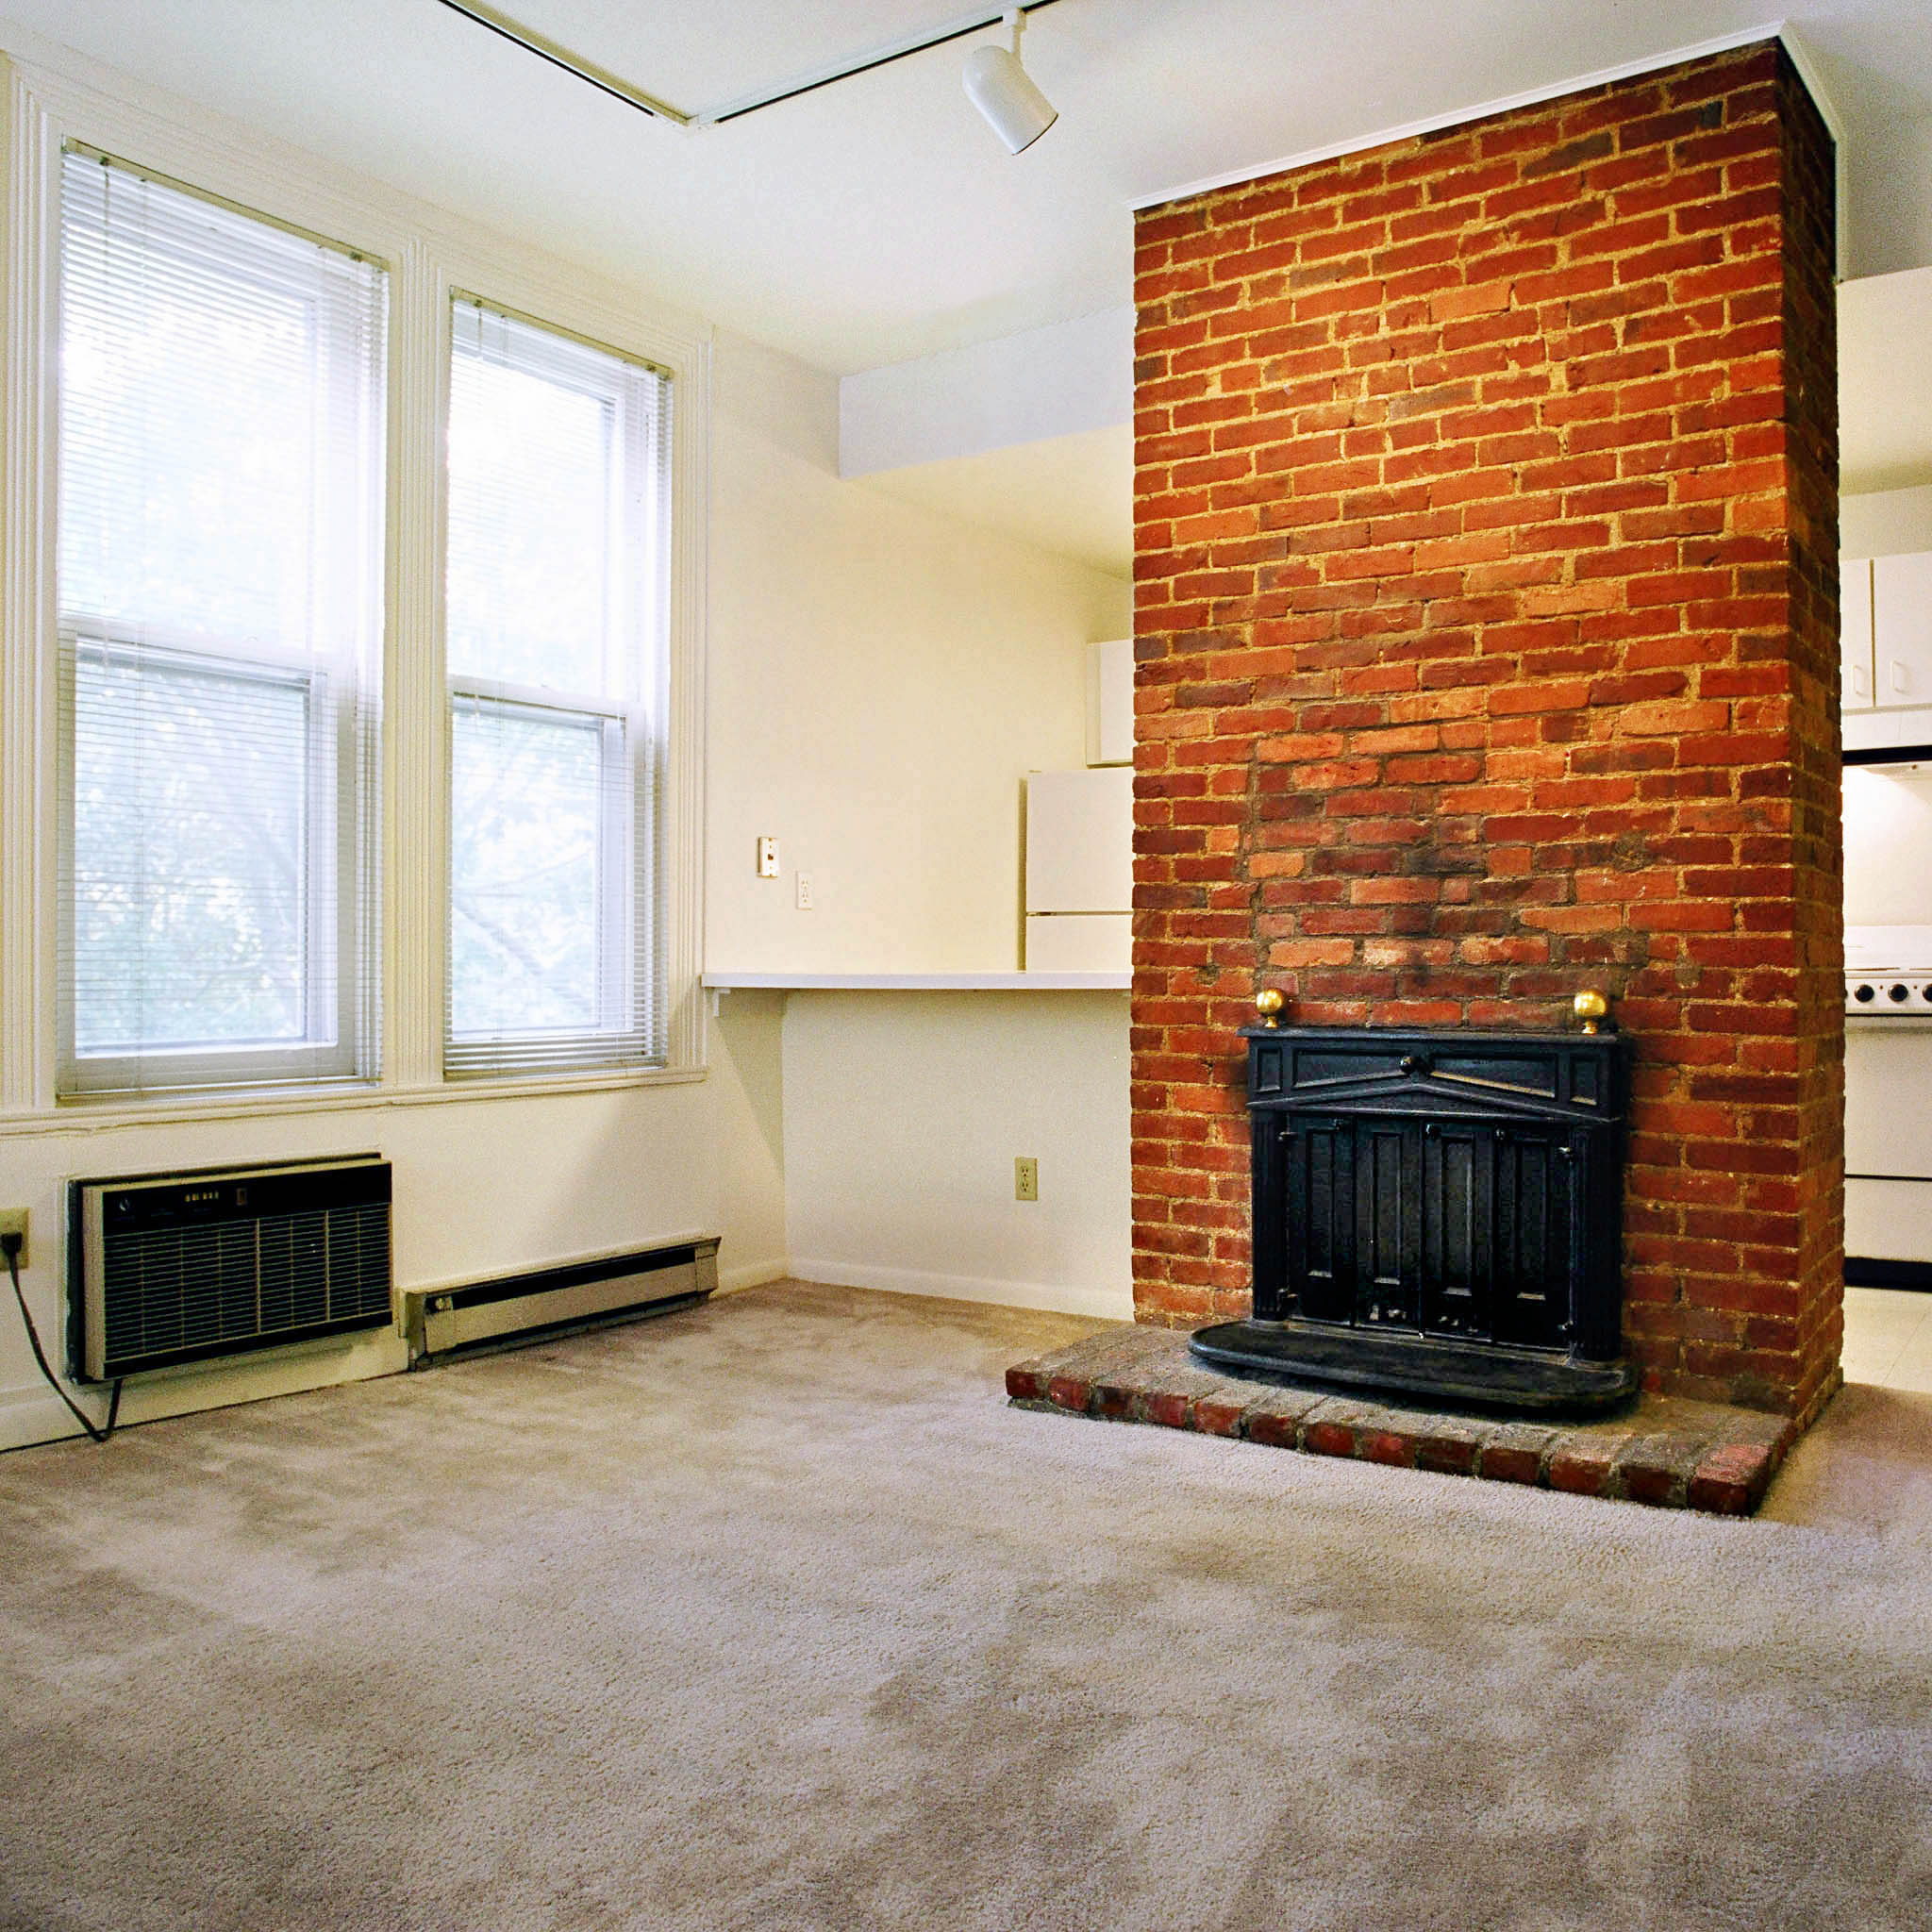 Distance From Fireplace To Rug: 6328 Howe Street, Apt. 21